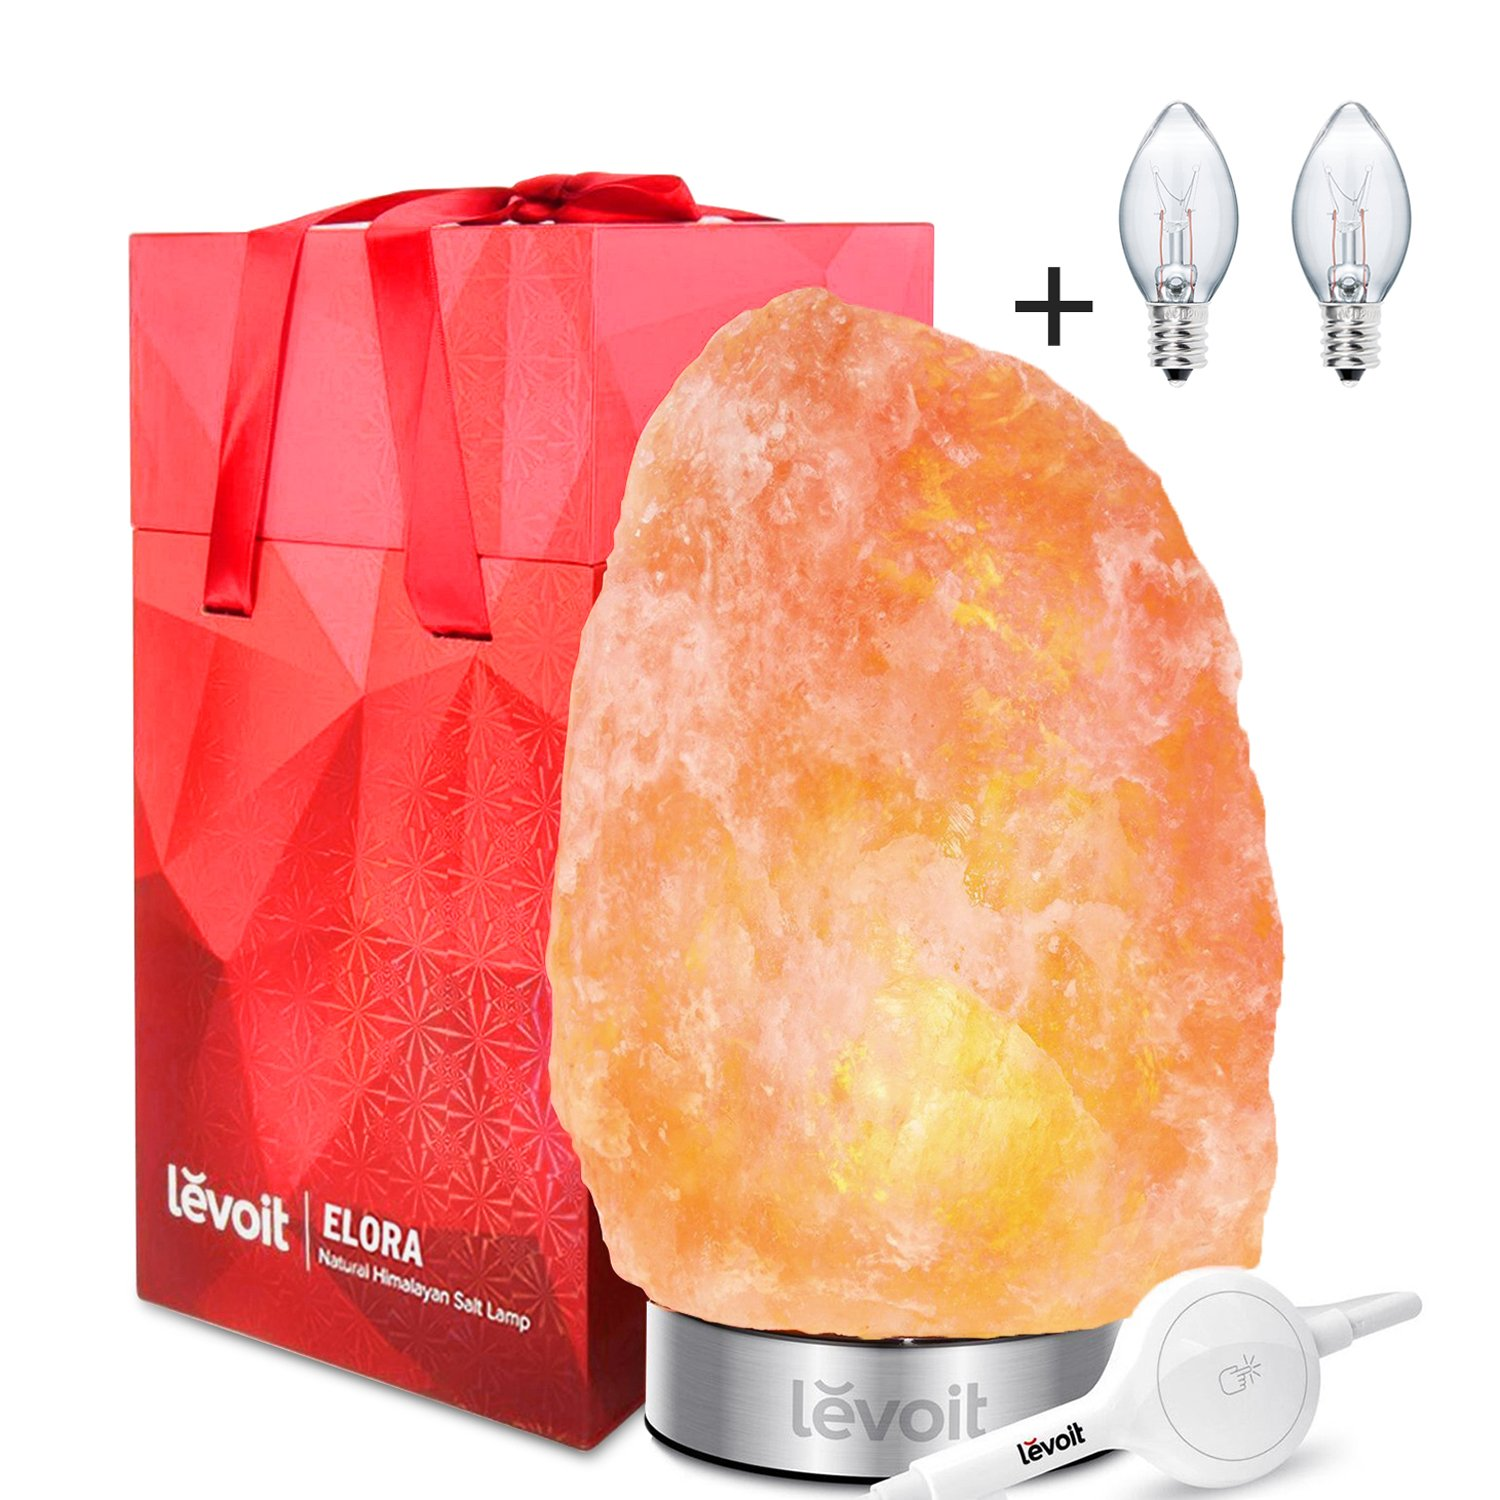 Levoit Elora Salt Lamp, Himalayan / Hymilain Sea Salt Lamps, Pink Crystal Salt Rock Lamp, Night Light, Stainless Steel Base, Dimmable Touch Switch, Holiday Gift(ETL Certified, 2 Extra Original Bulbs)